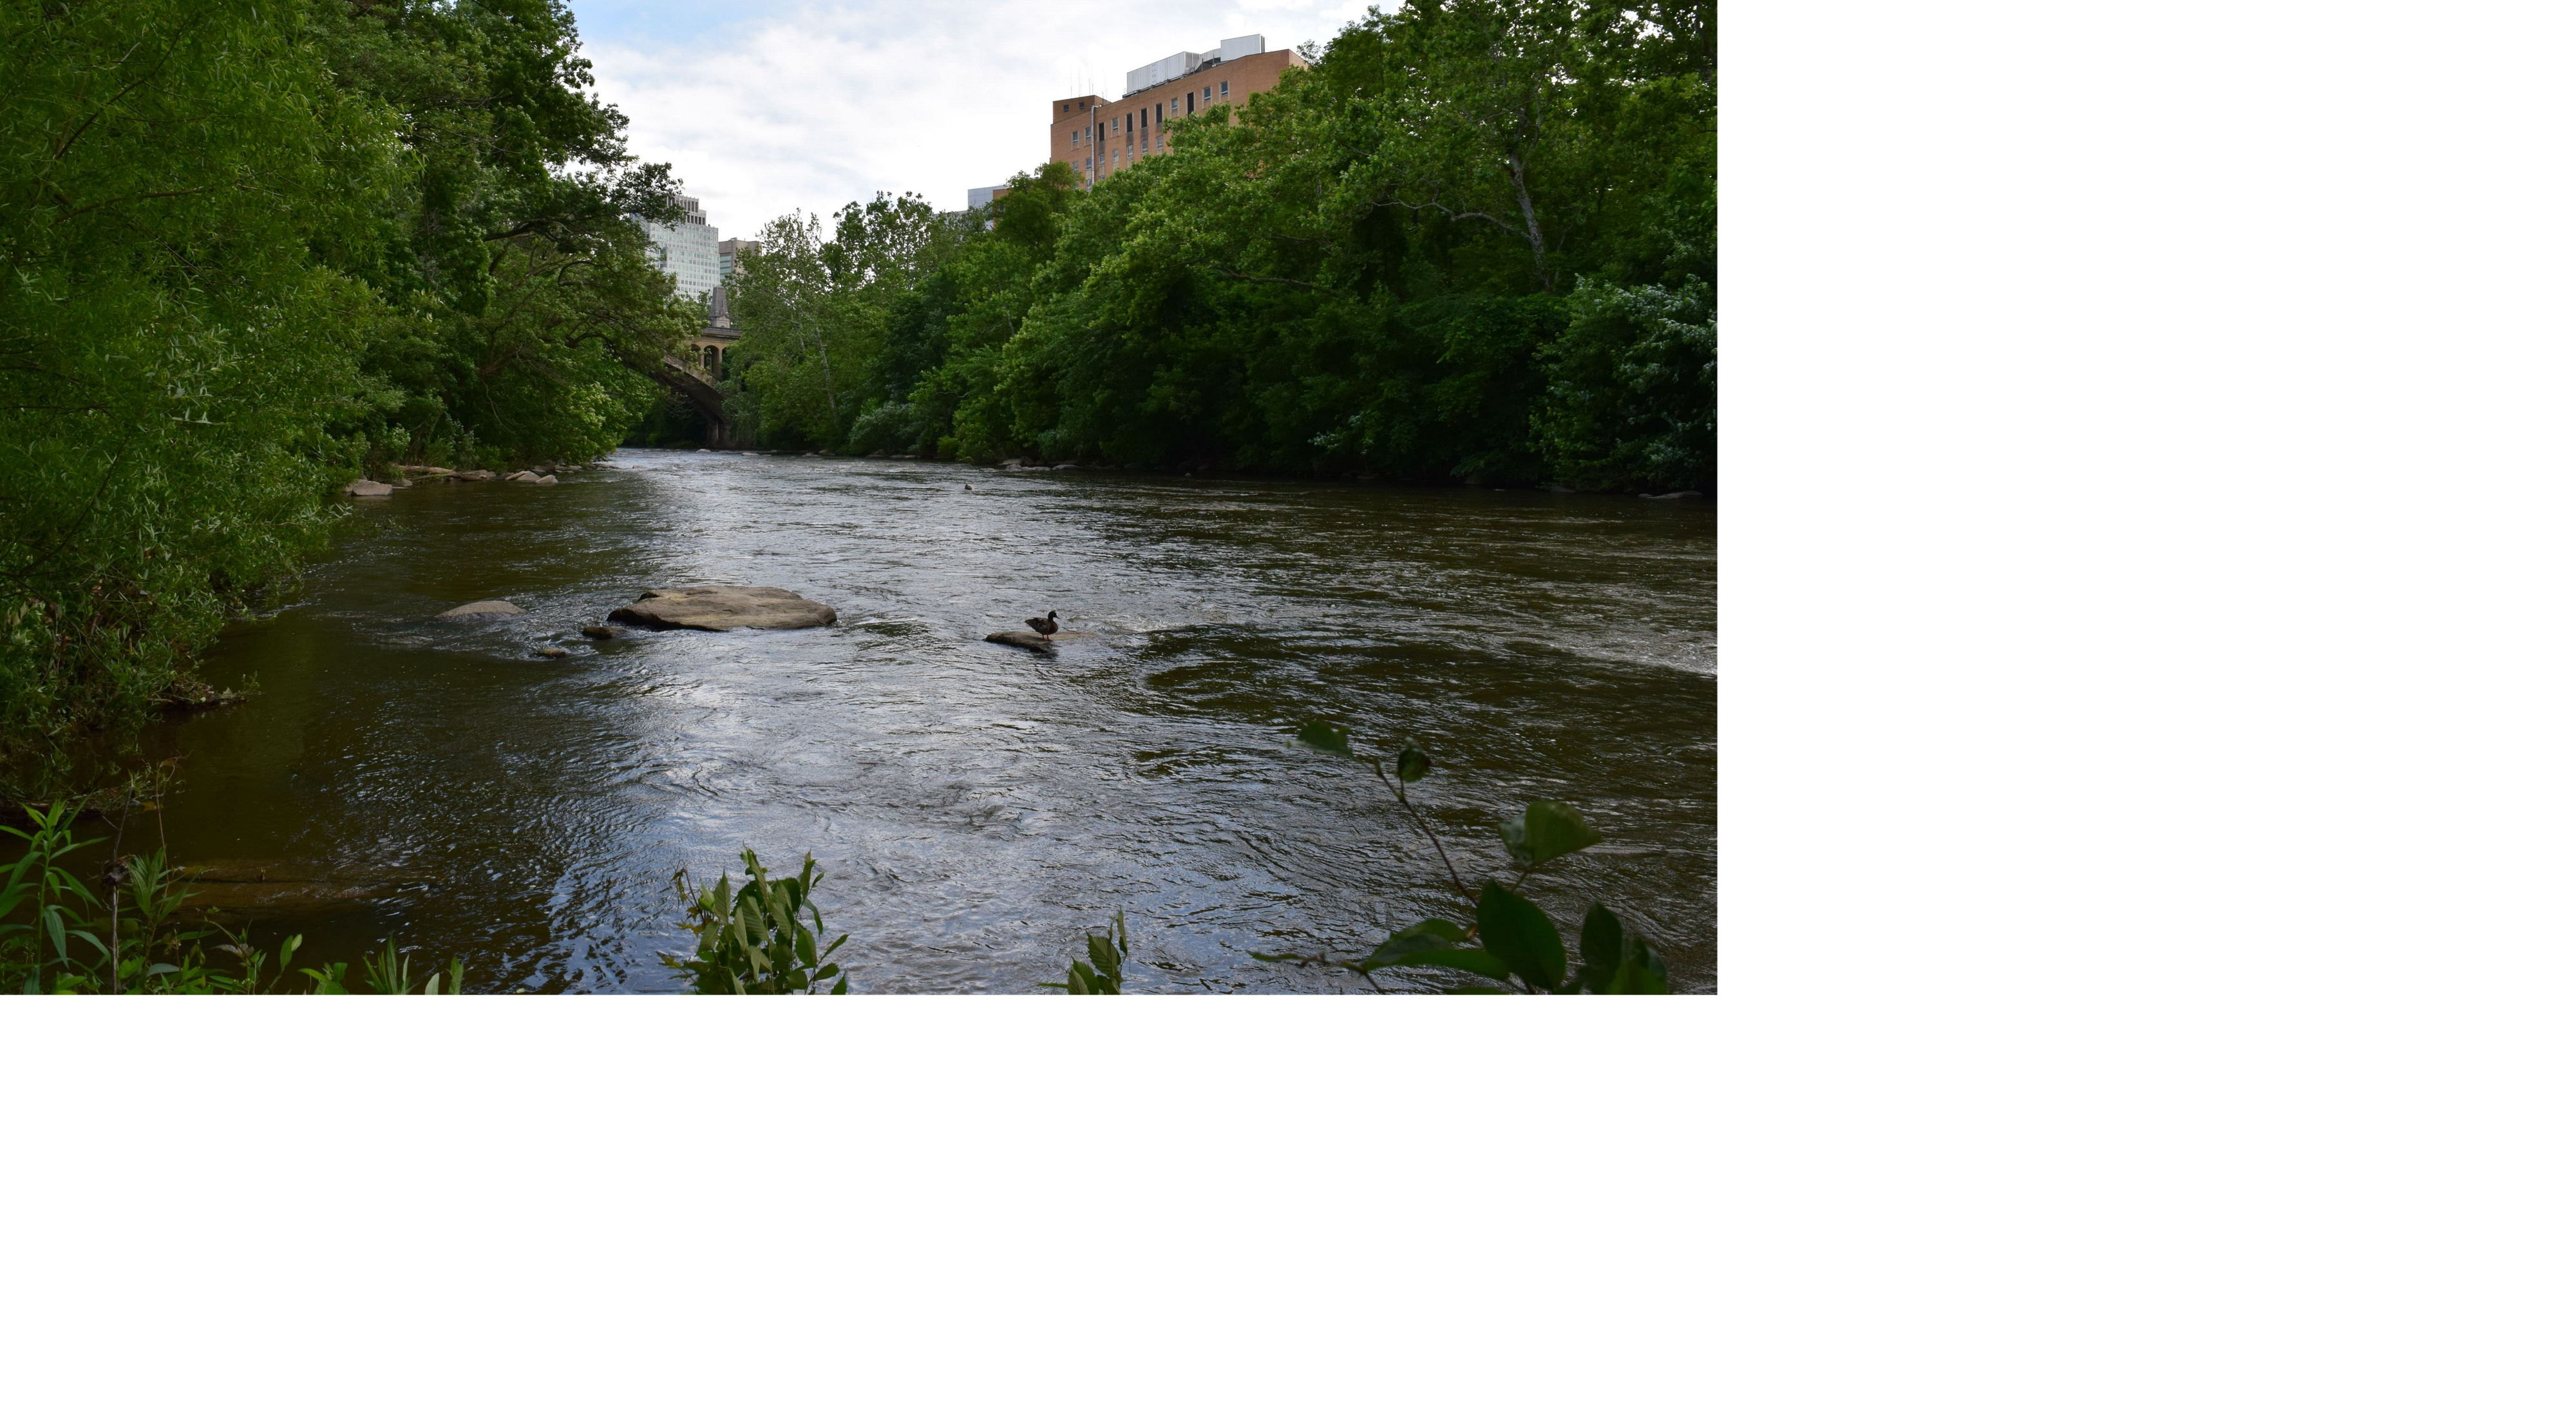 The Brandywine River flows between tree lined banks in the city of Wilmington, DE. An arched bridge spans the river in the background. City buildings rise behind the trees.